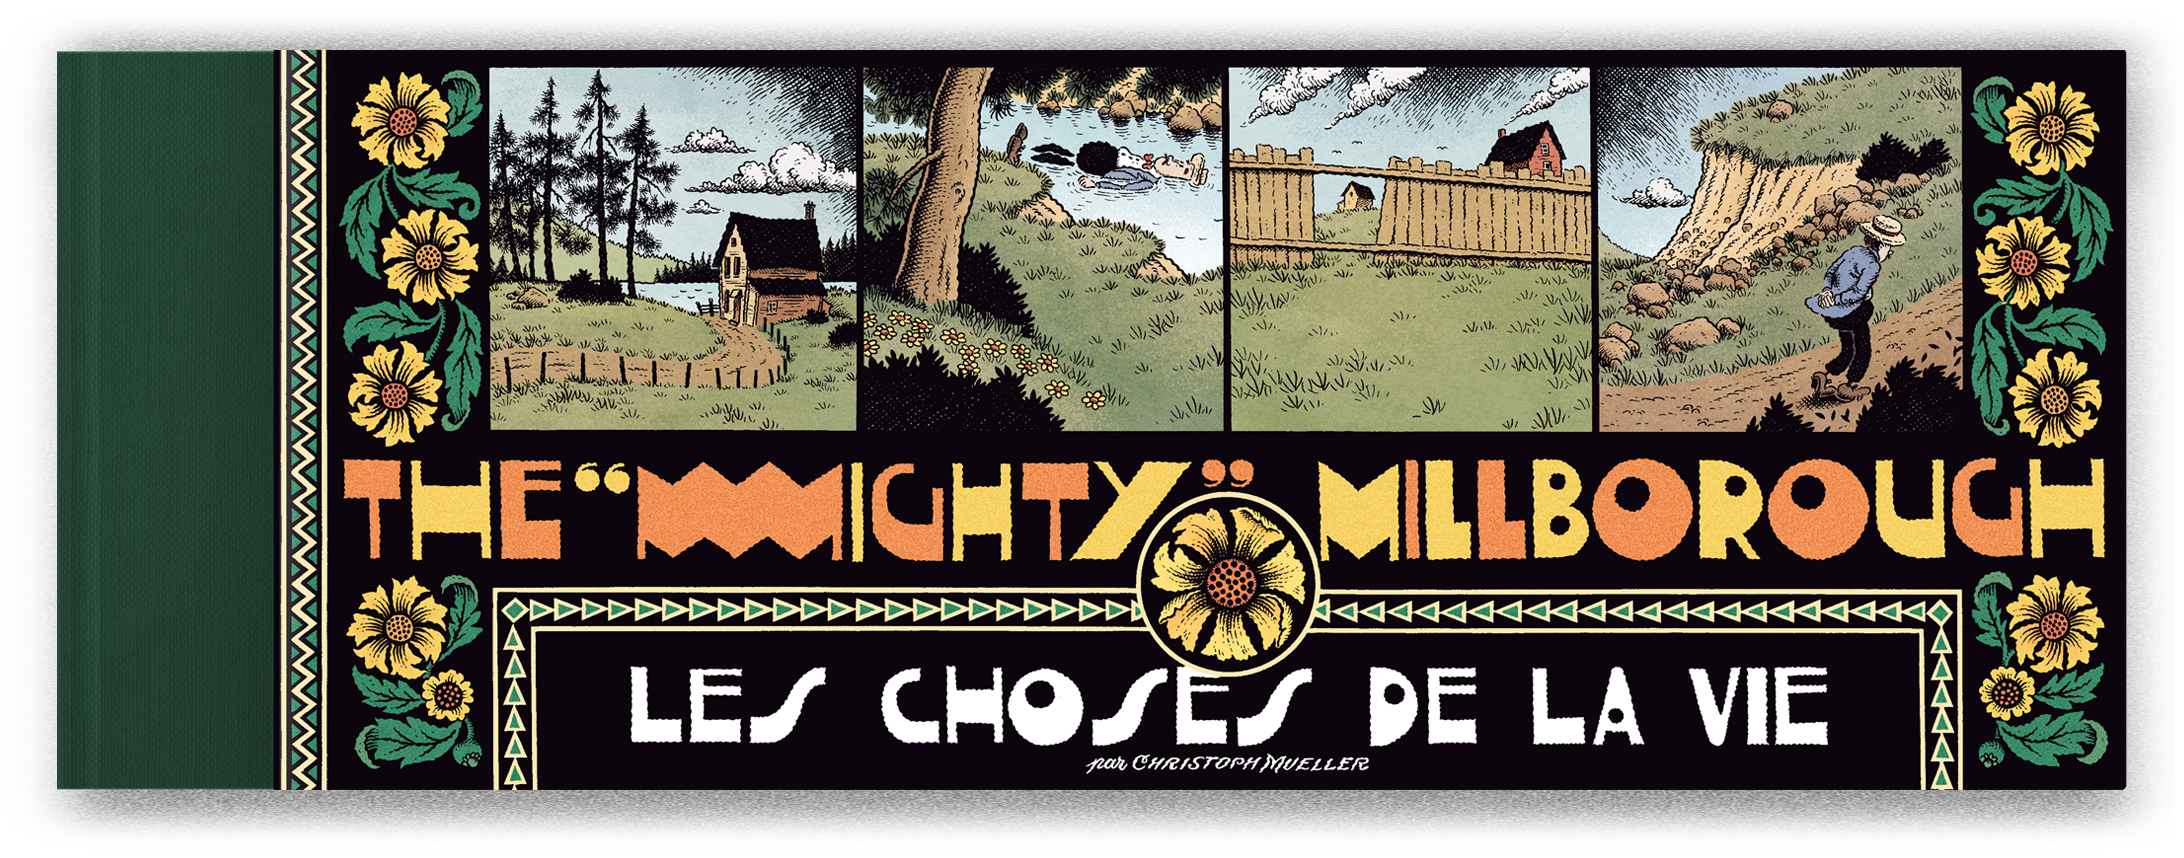 The Mighty Millborough – Contes d'un homme de gout 6 Pieds Sous Terre 2013.